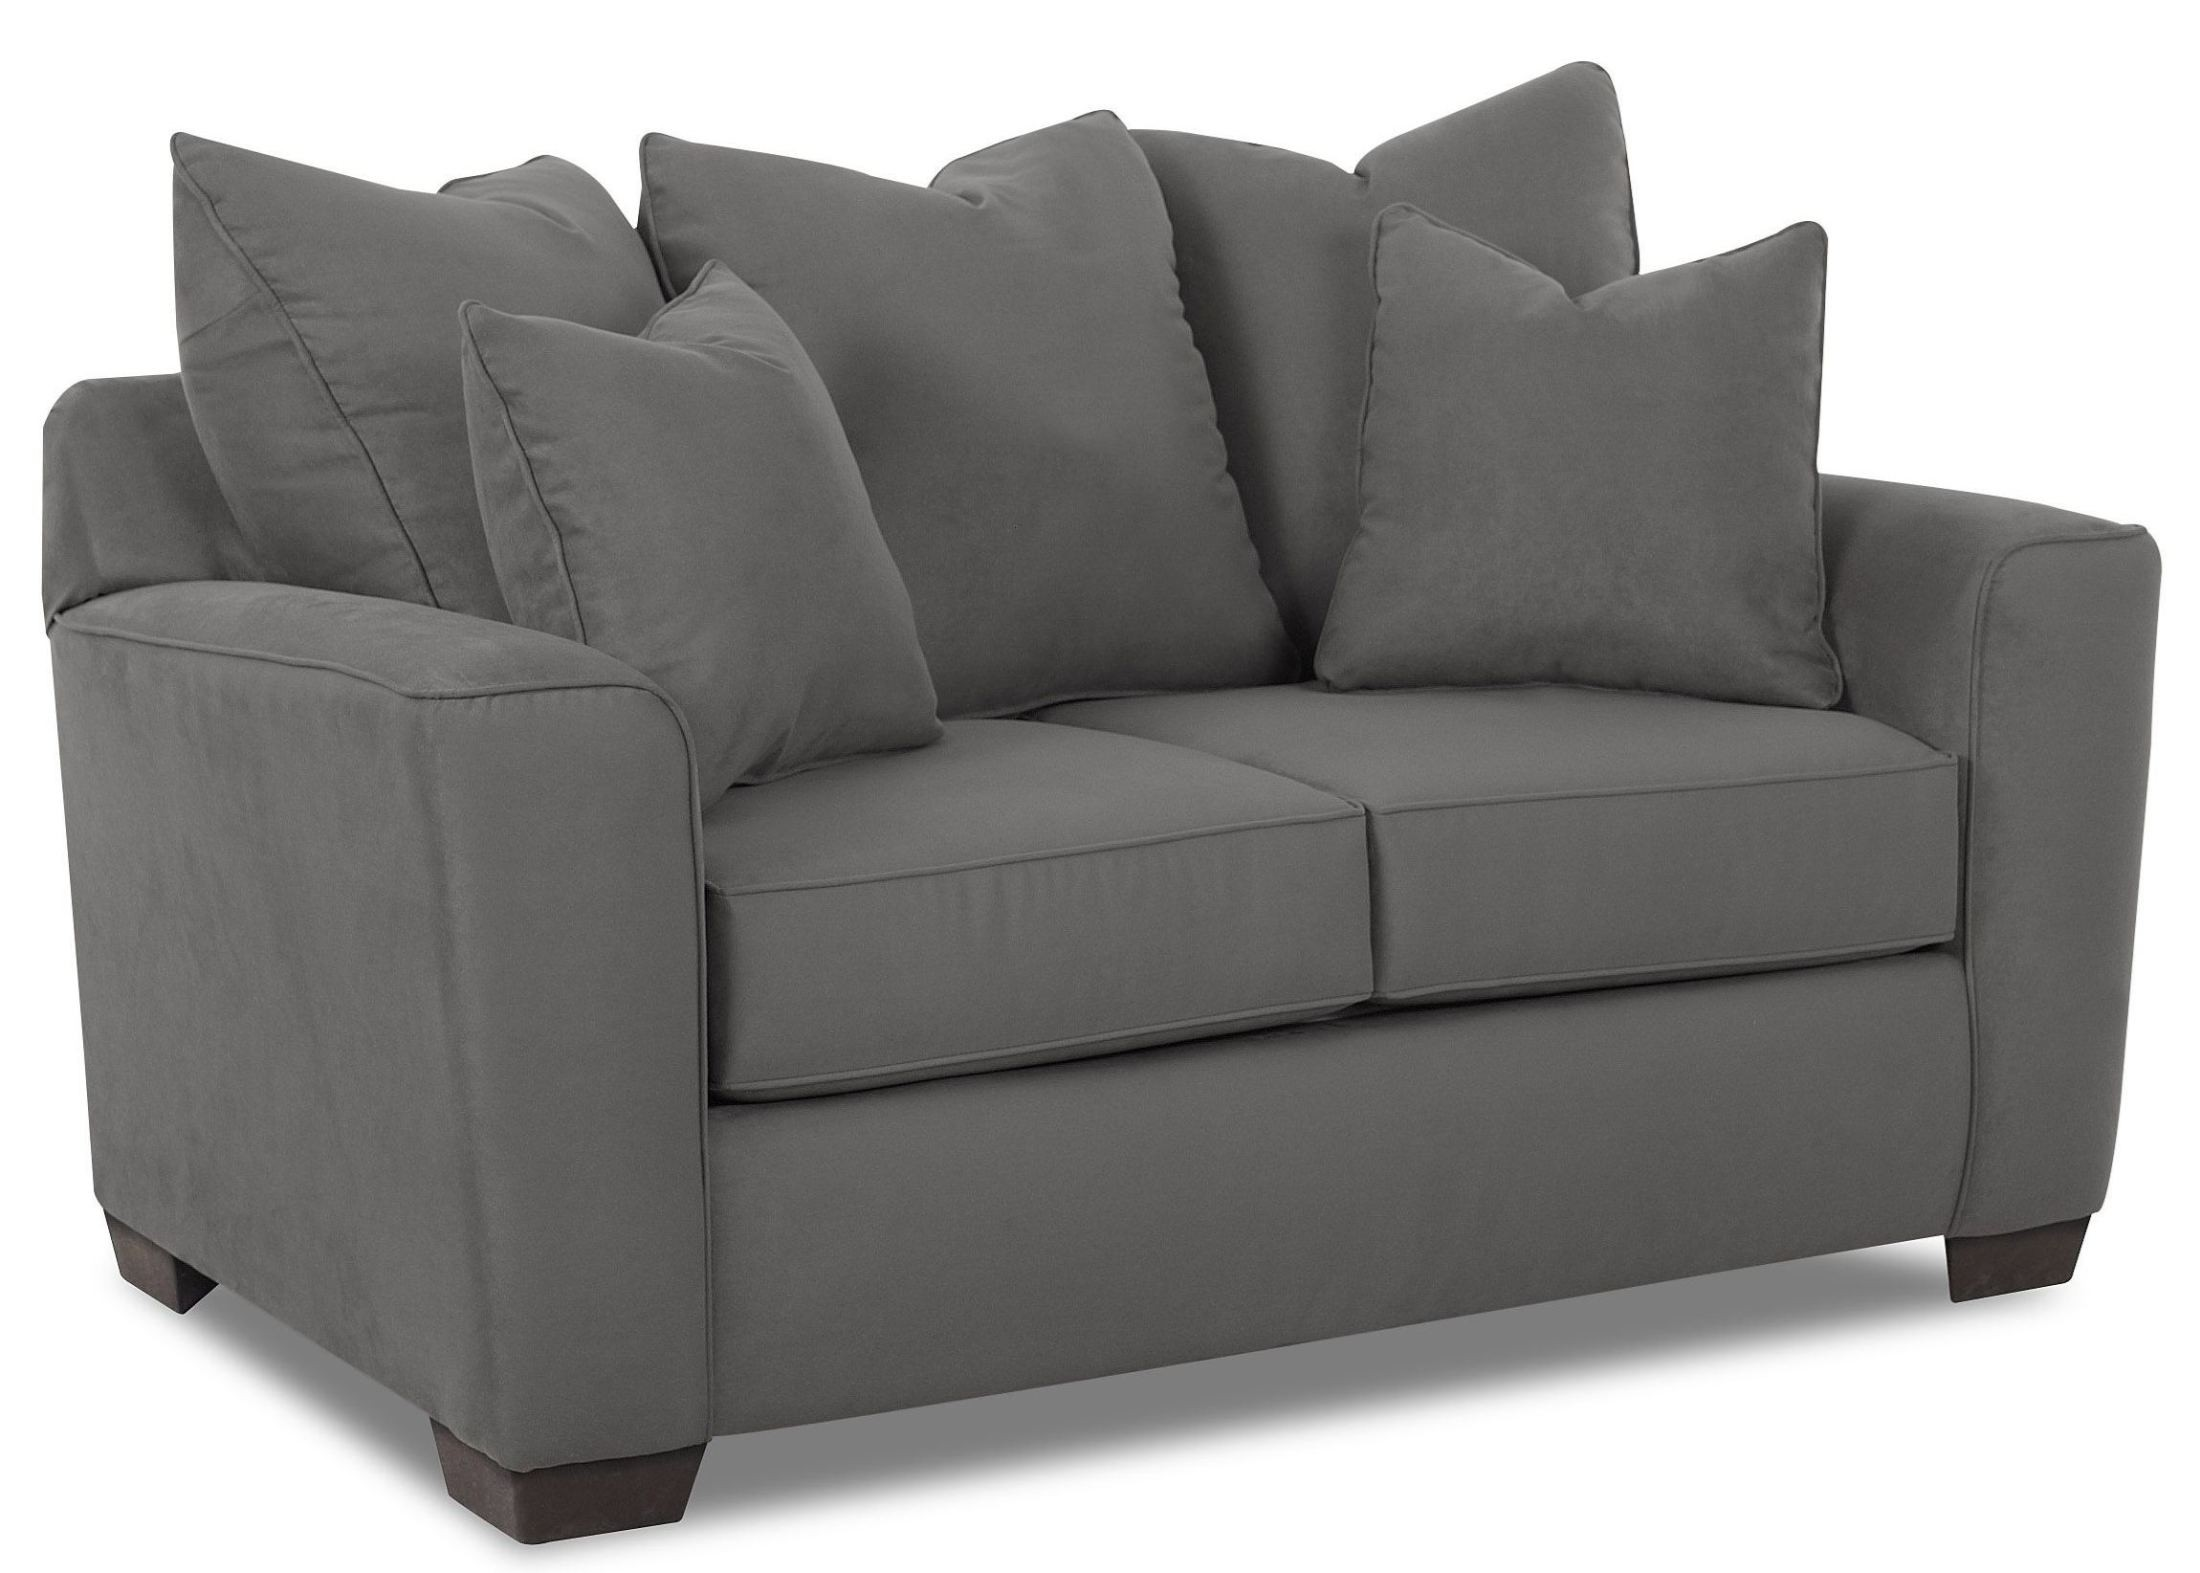 Heather Microsuede Charcoal Loveseat E56044 012013129364 Klaussner